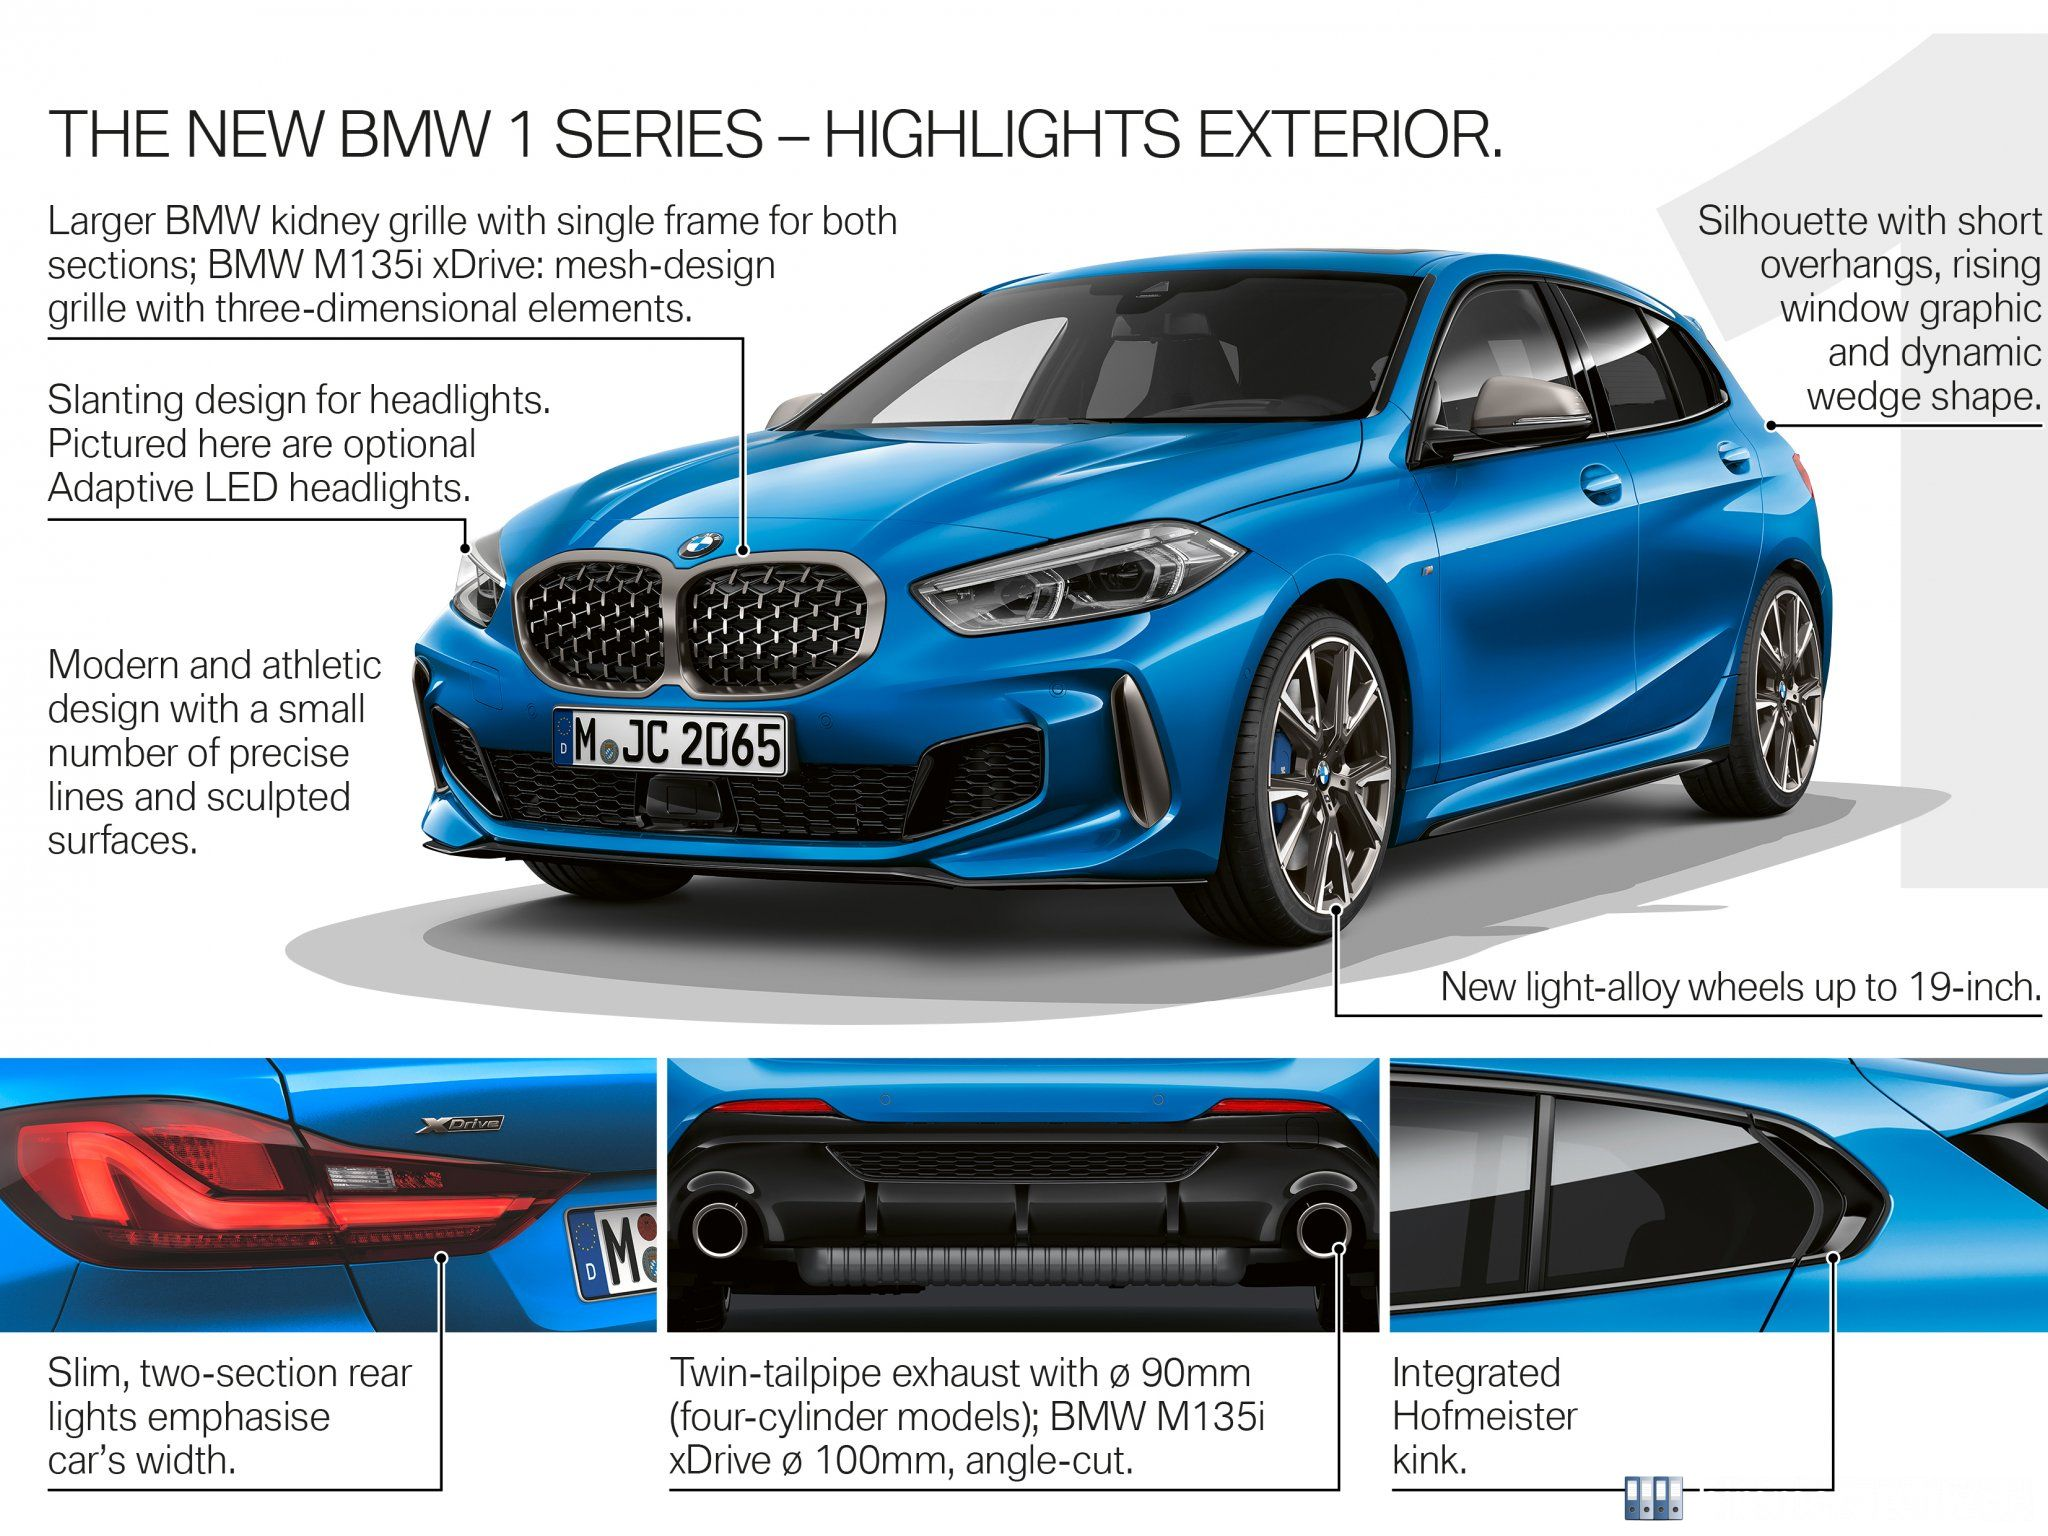 The all-new BMW 1 Series - Product Highlights